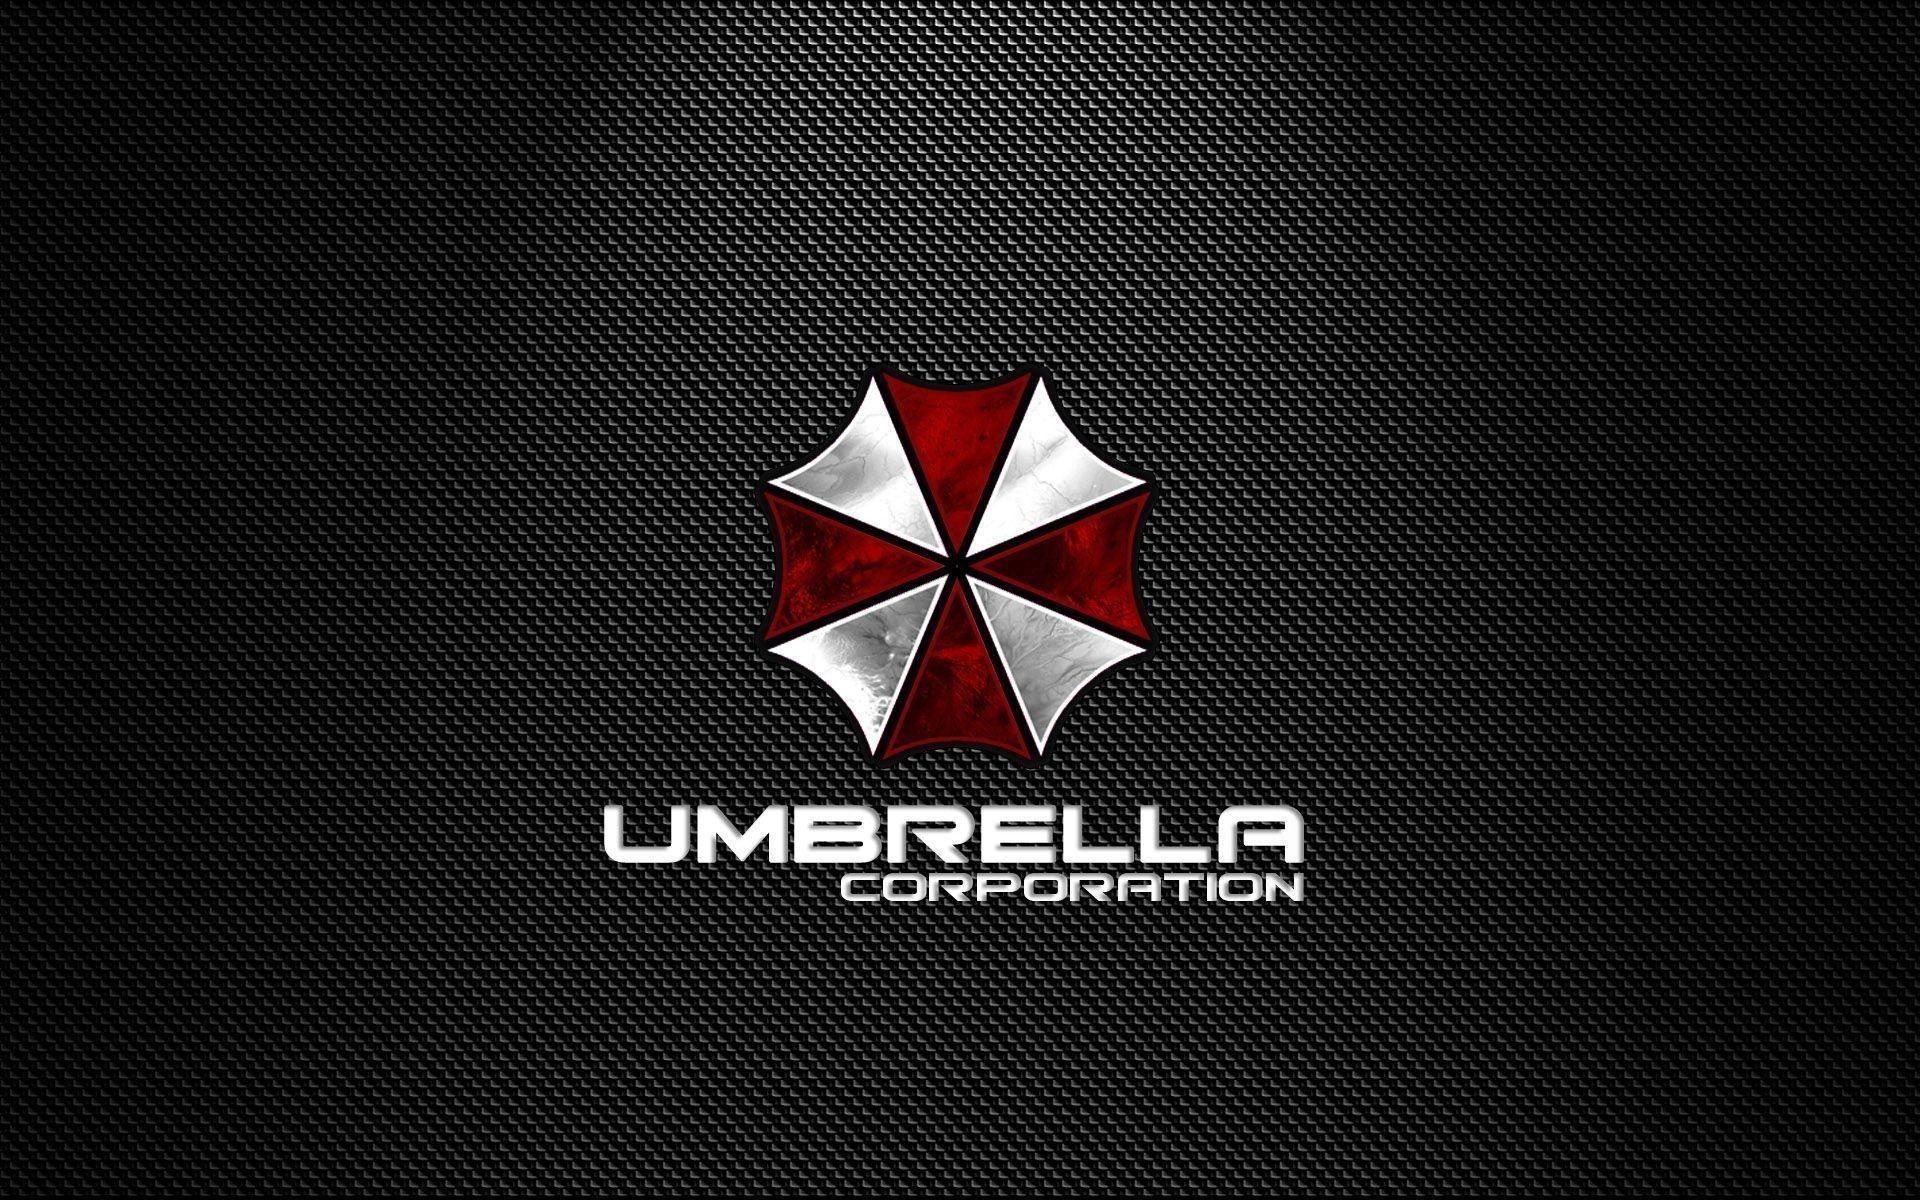 umbrella corporation wallpapers - wallpaper cave